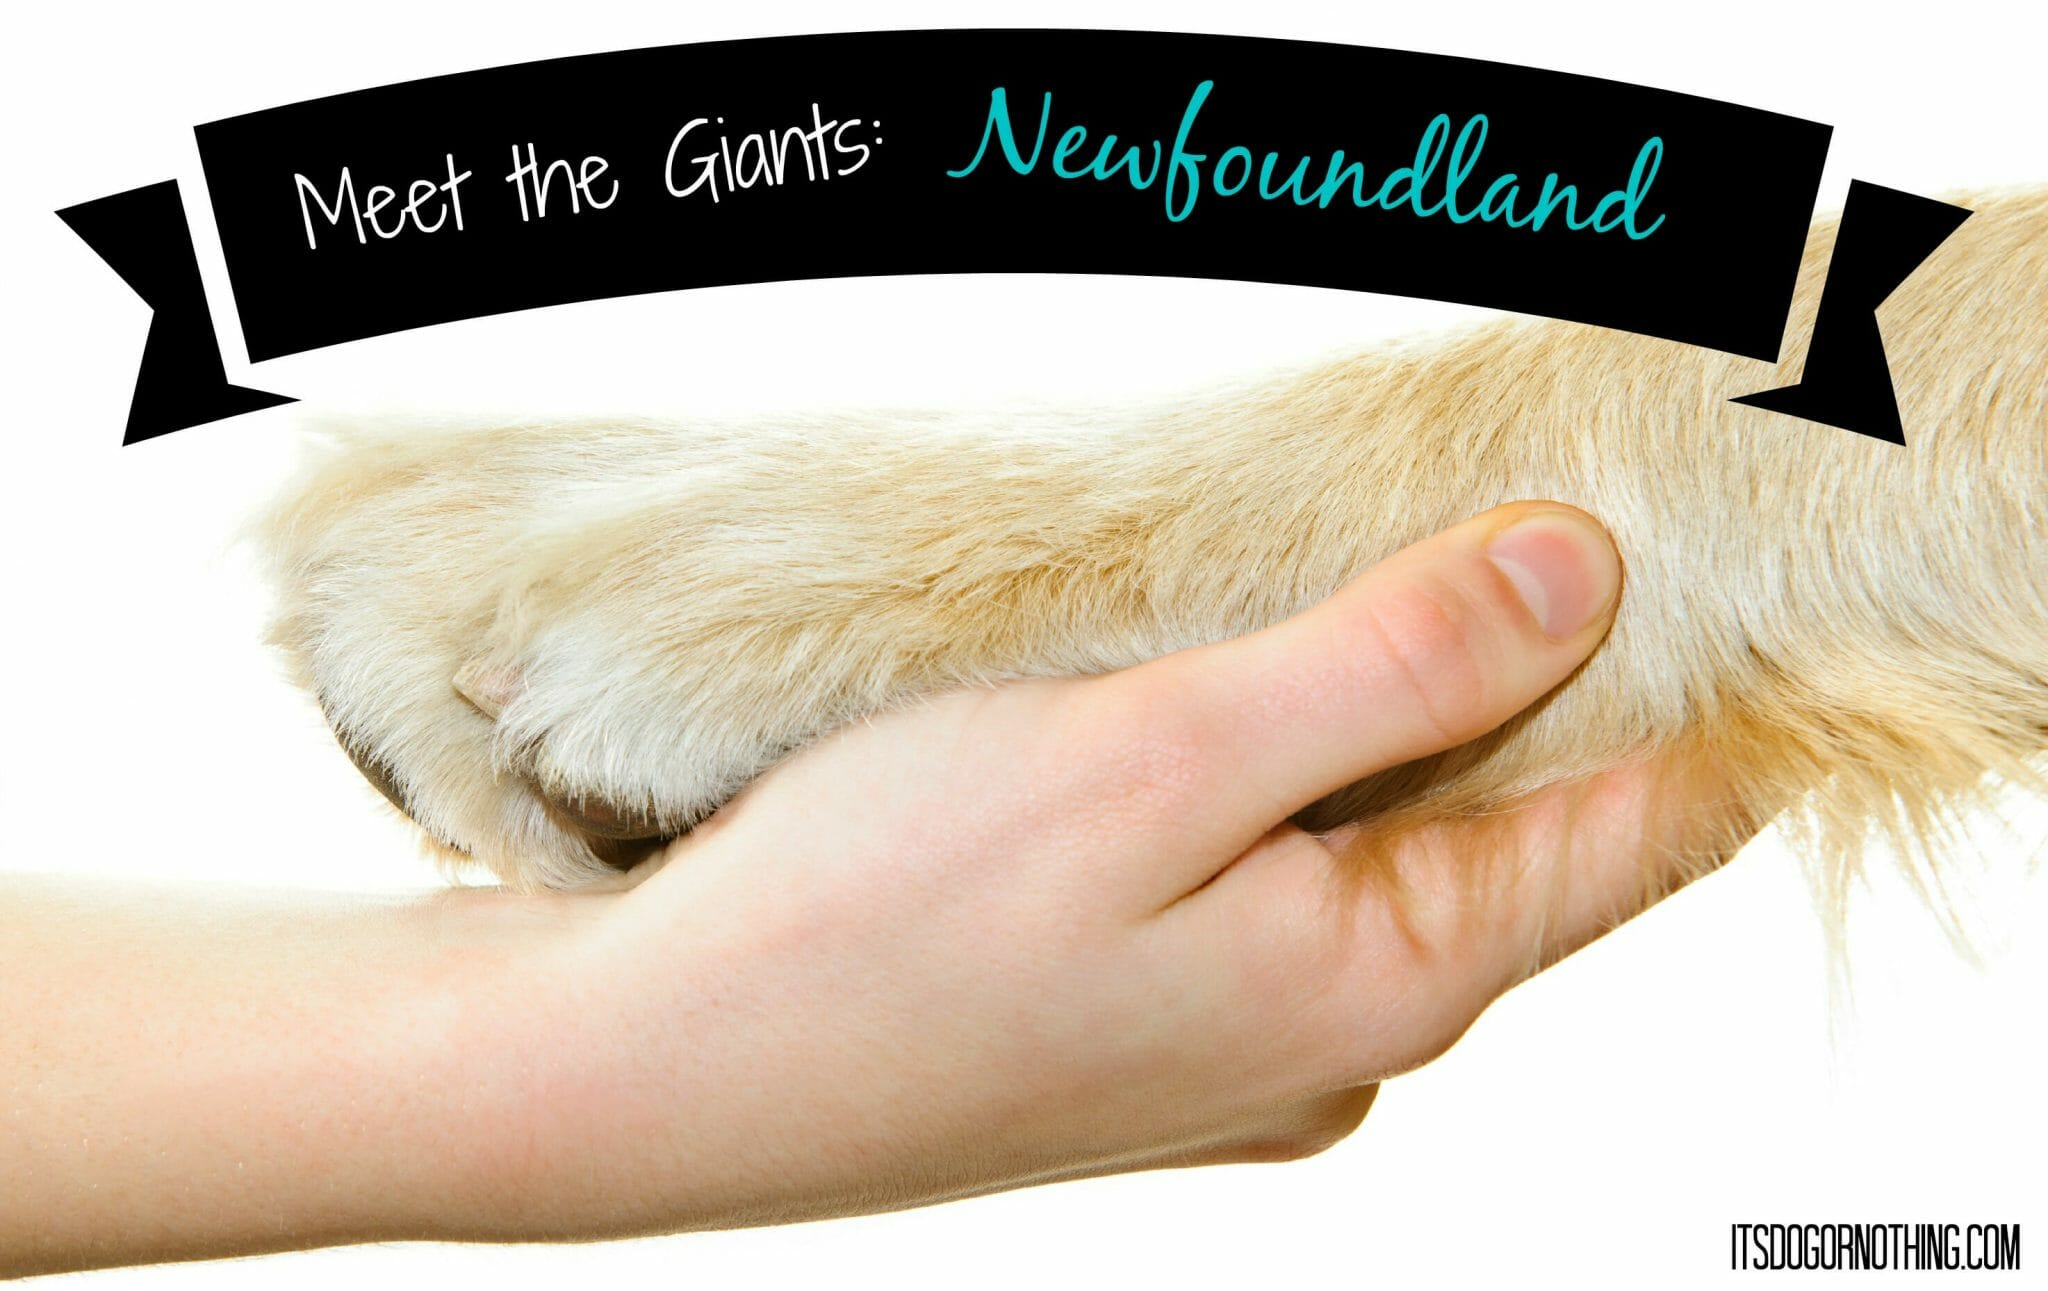 Meet the Giants: Newfoundland